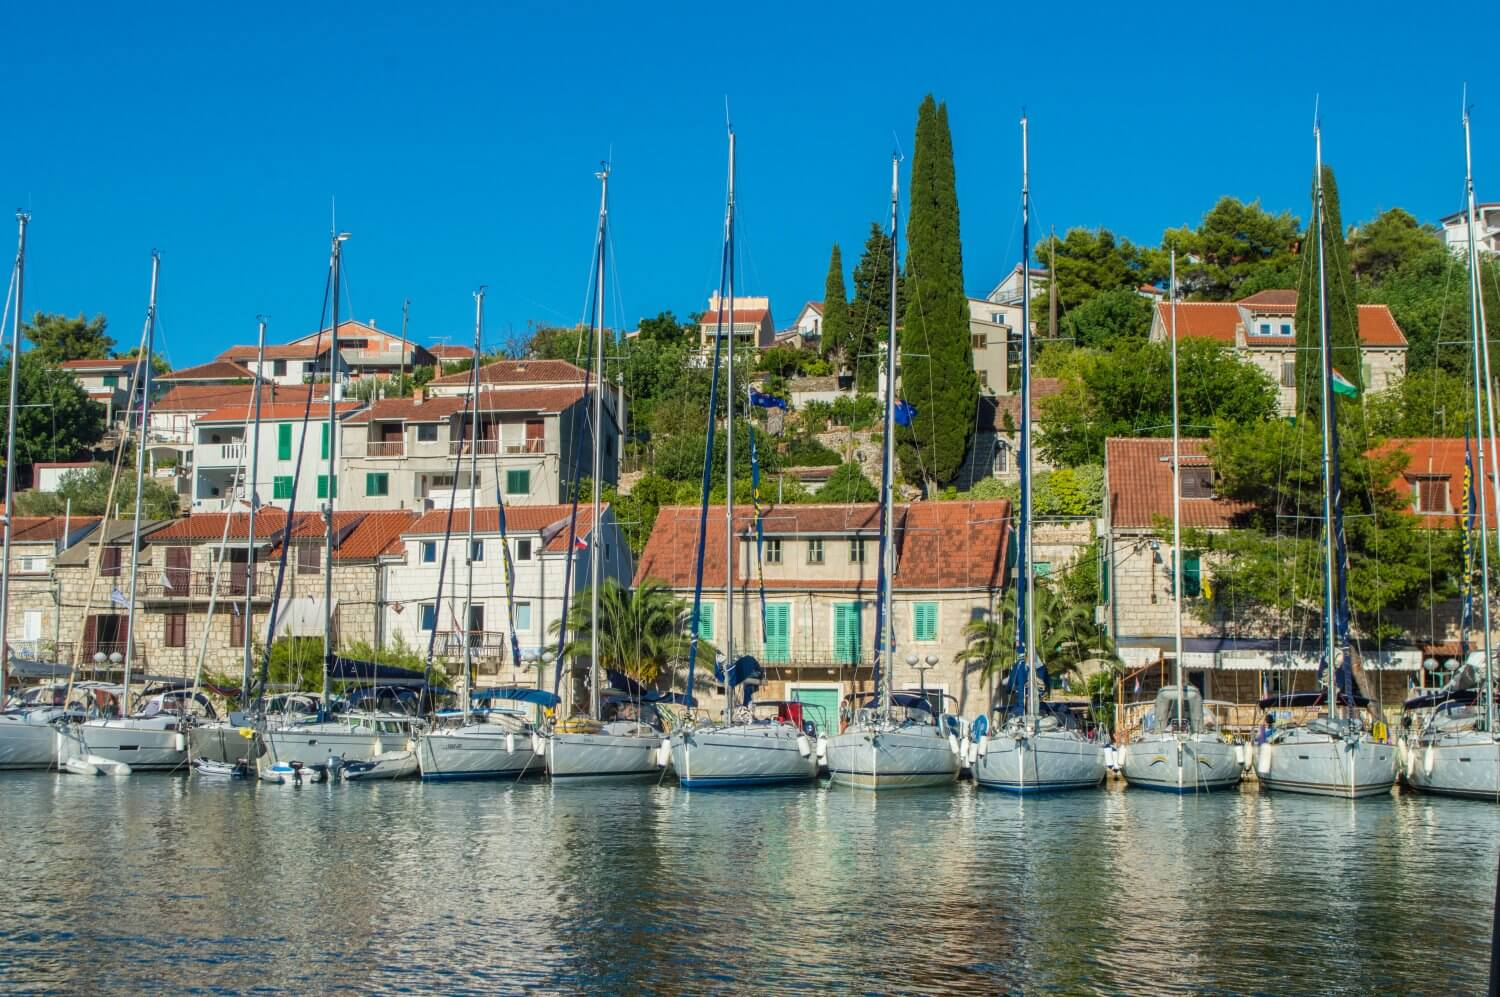 The ultimate packing guide for a sailing trip in Croatia! Don't miss these amazing tips for packing on your Croatia sail trip. #Croatia #Sailing #PackingList